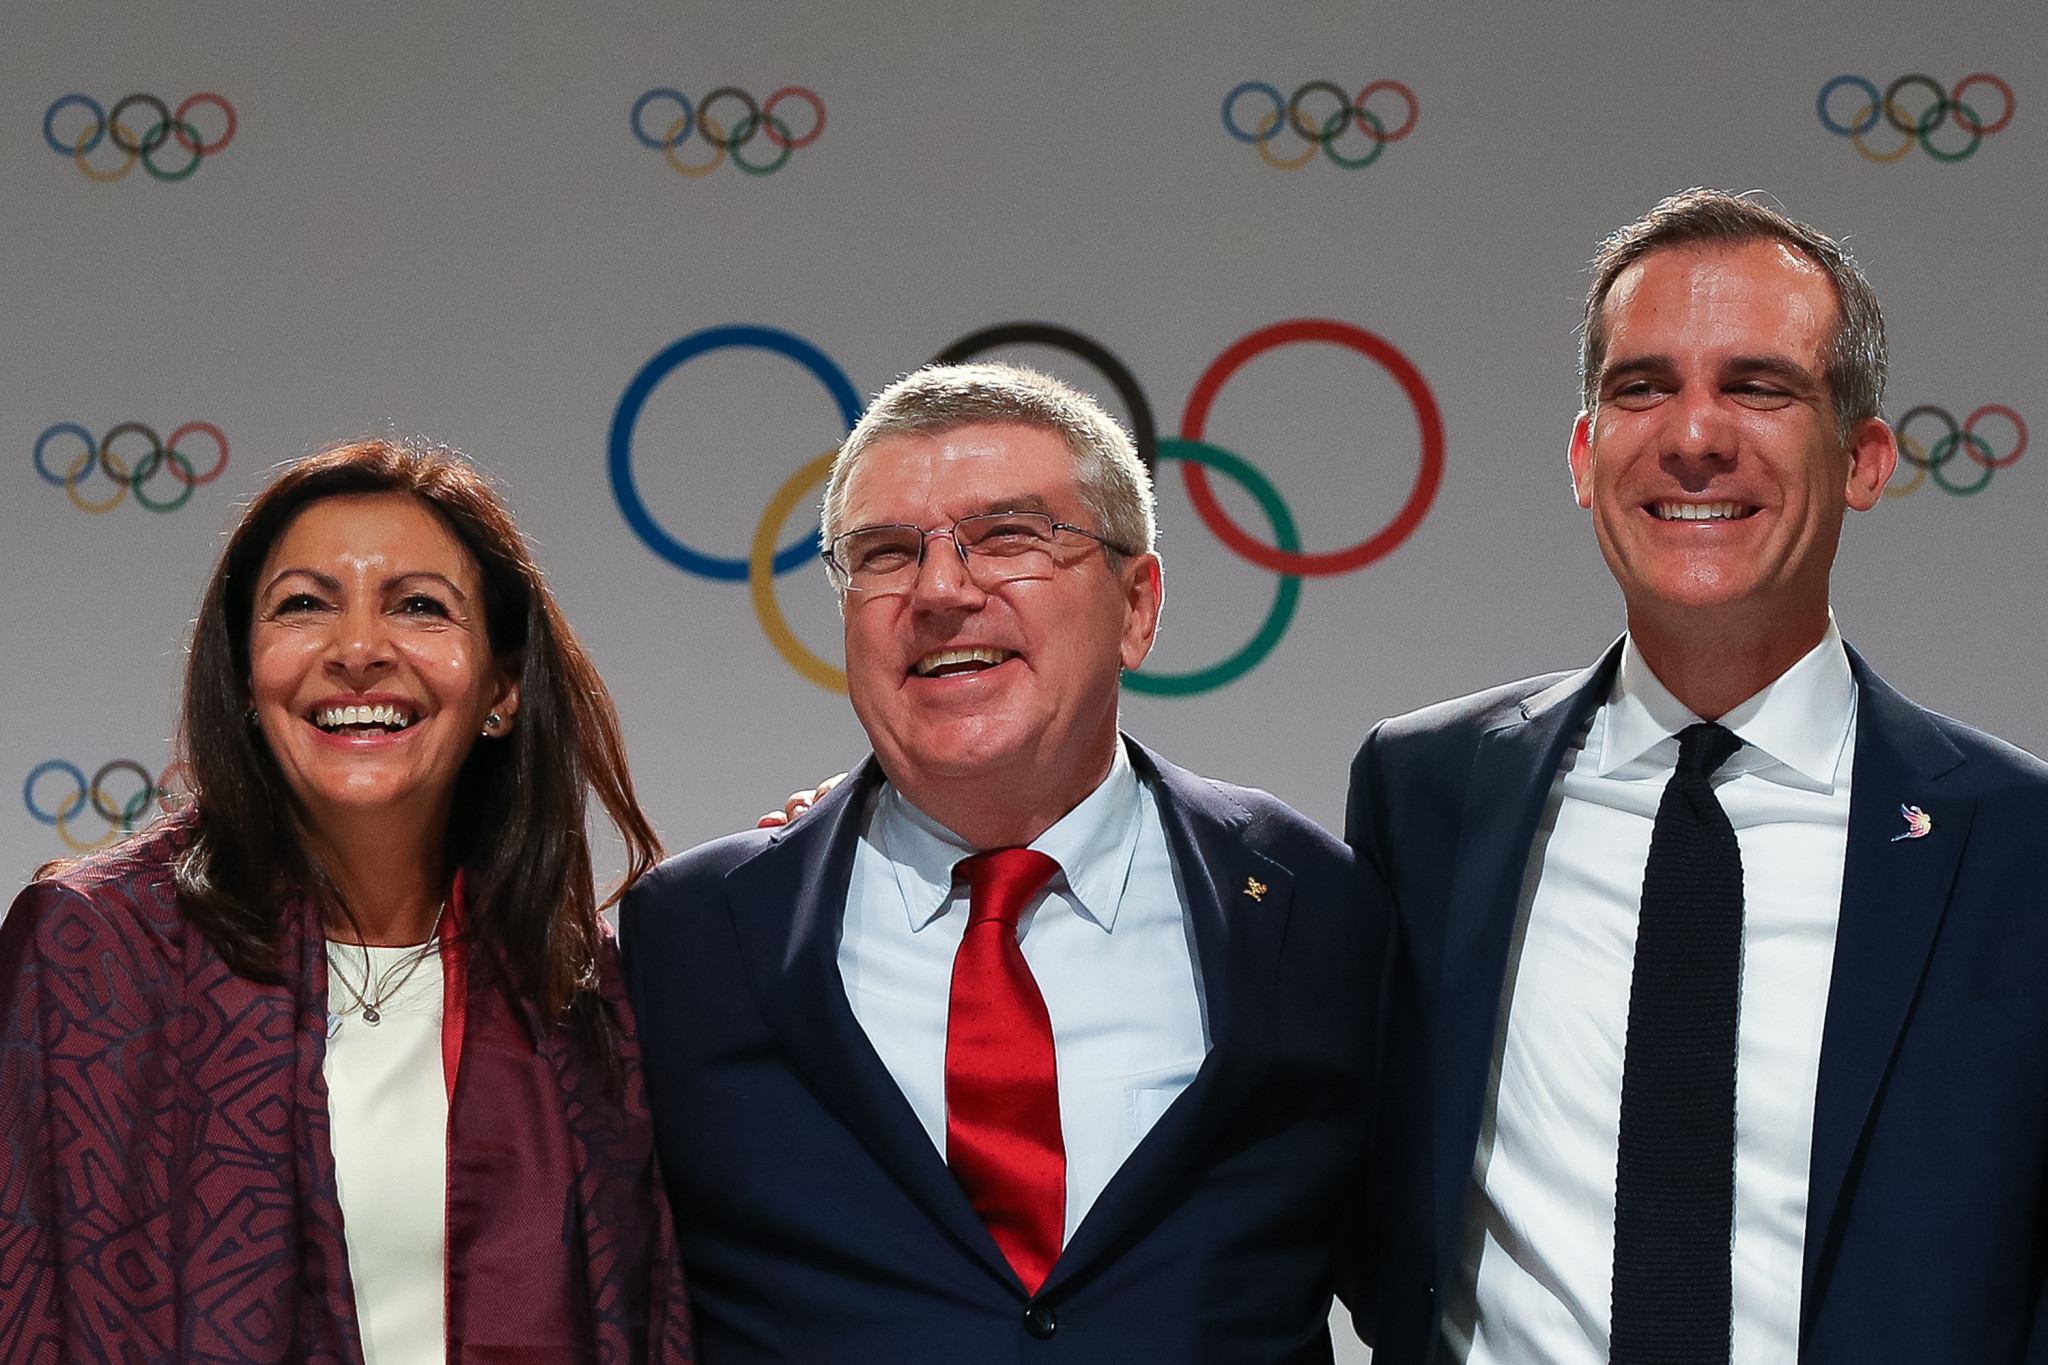 Anne Hidalgo, left, and Eric Garcetti, right, pictured either side of IOC President Thomas Bach ©Getty Images